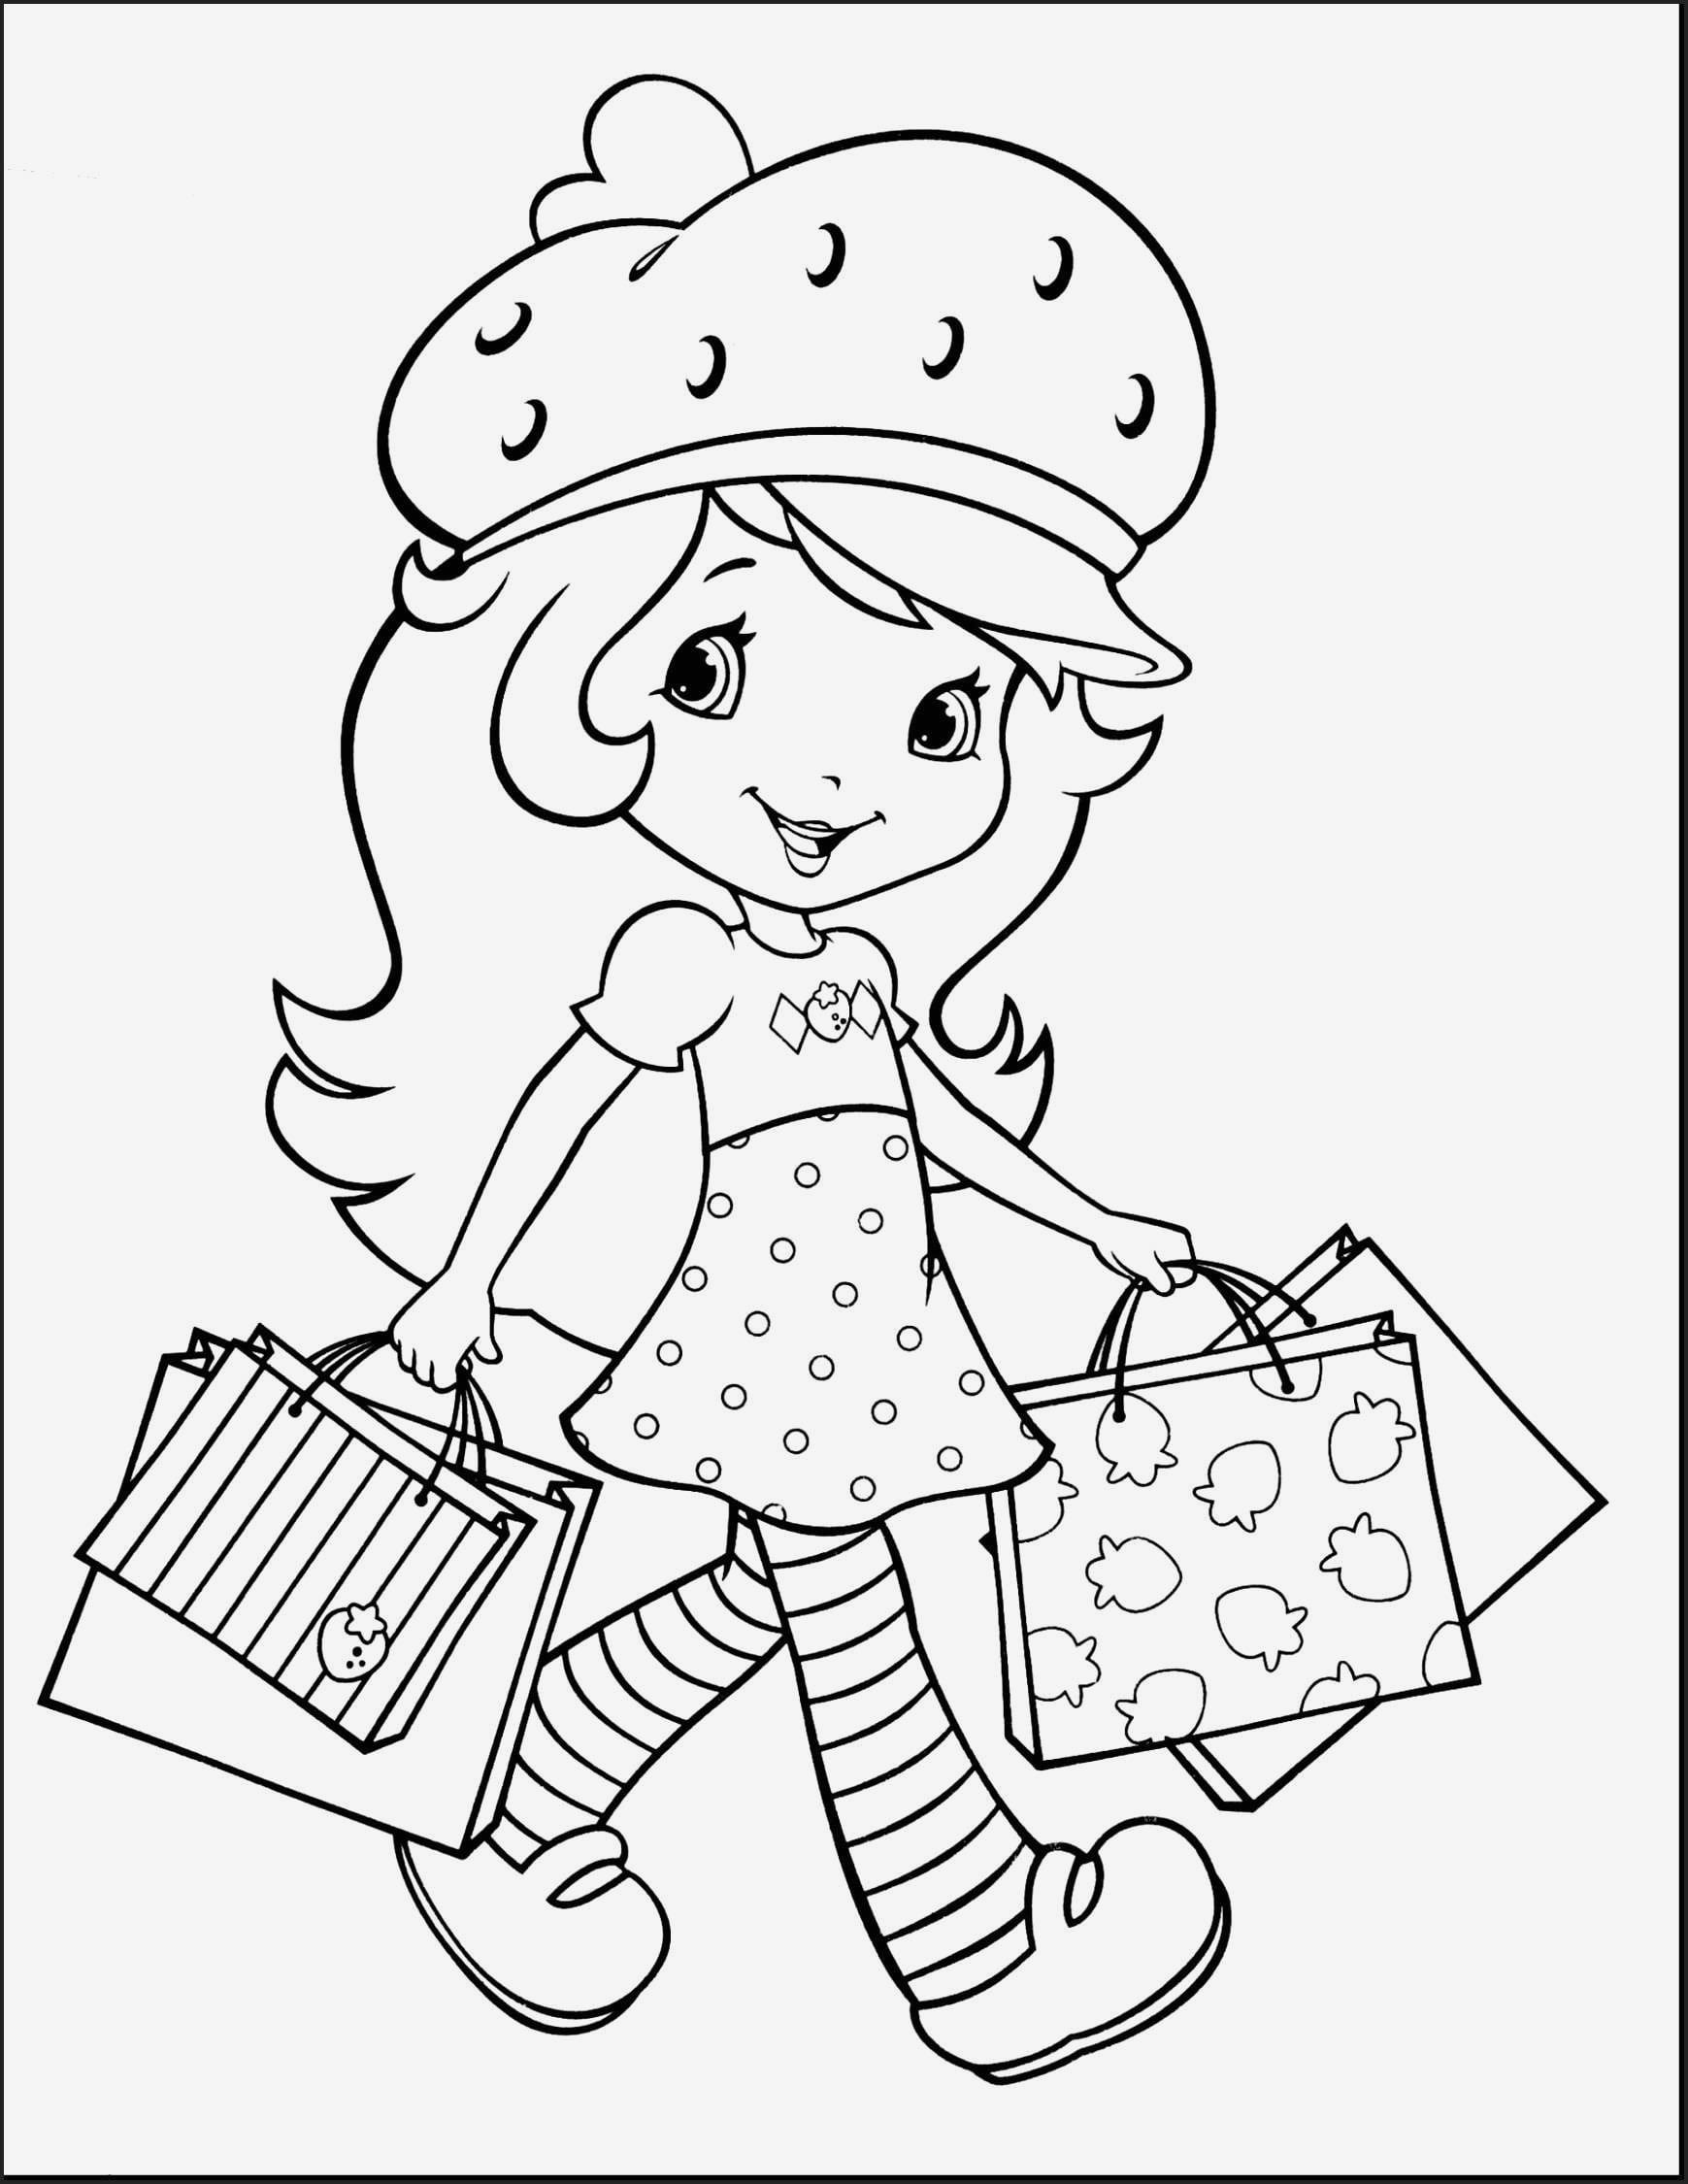 Strawberry Shortcake Coloring Pages Download And Print For Free